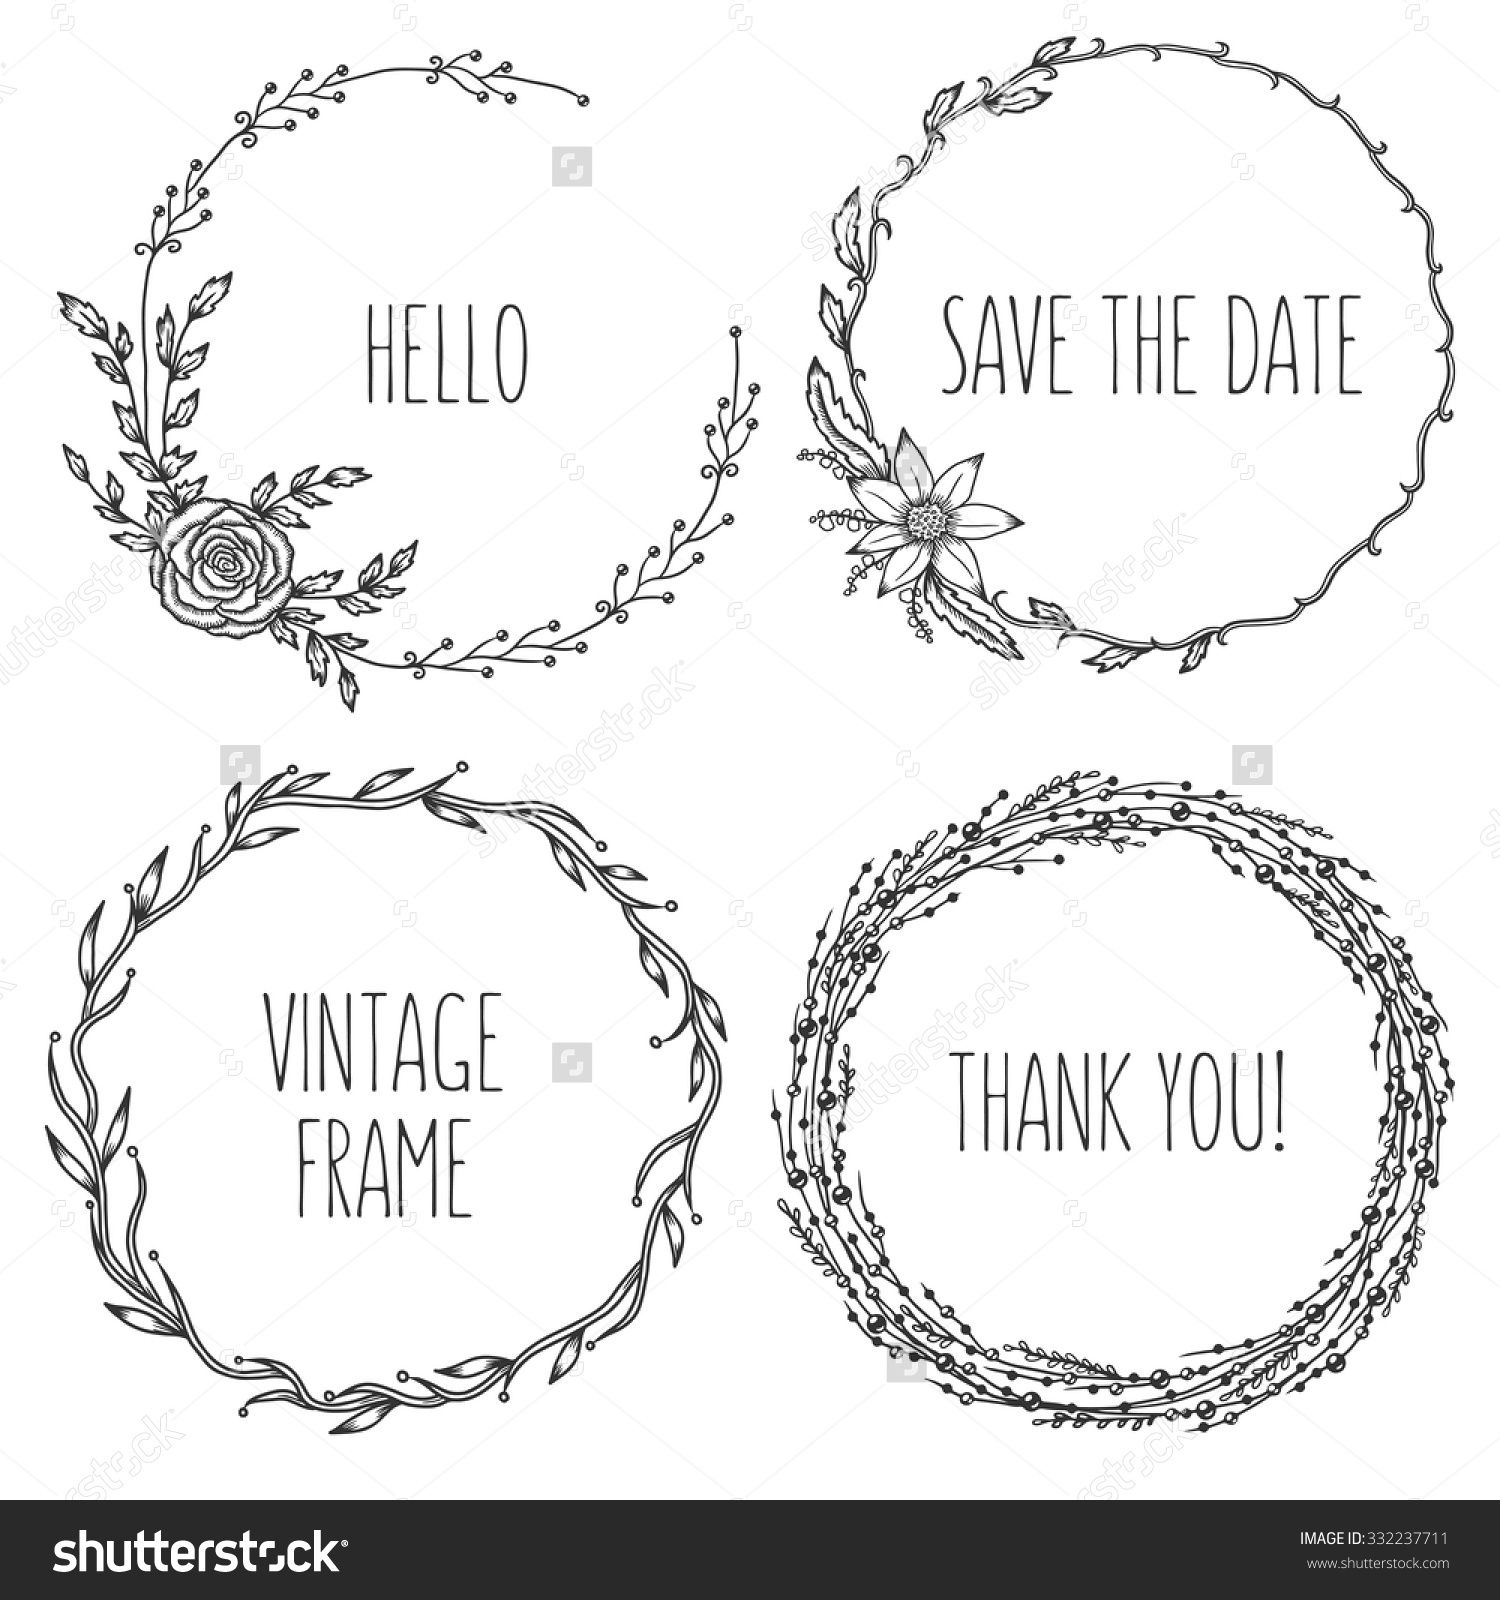 Vector vintage wreaths collection of trendy cute floral frames graphic design elements for wedding cards prints decoration greeting cards hand drawn round illustration set buy this stock vector on shutterstock junglespirit Images